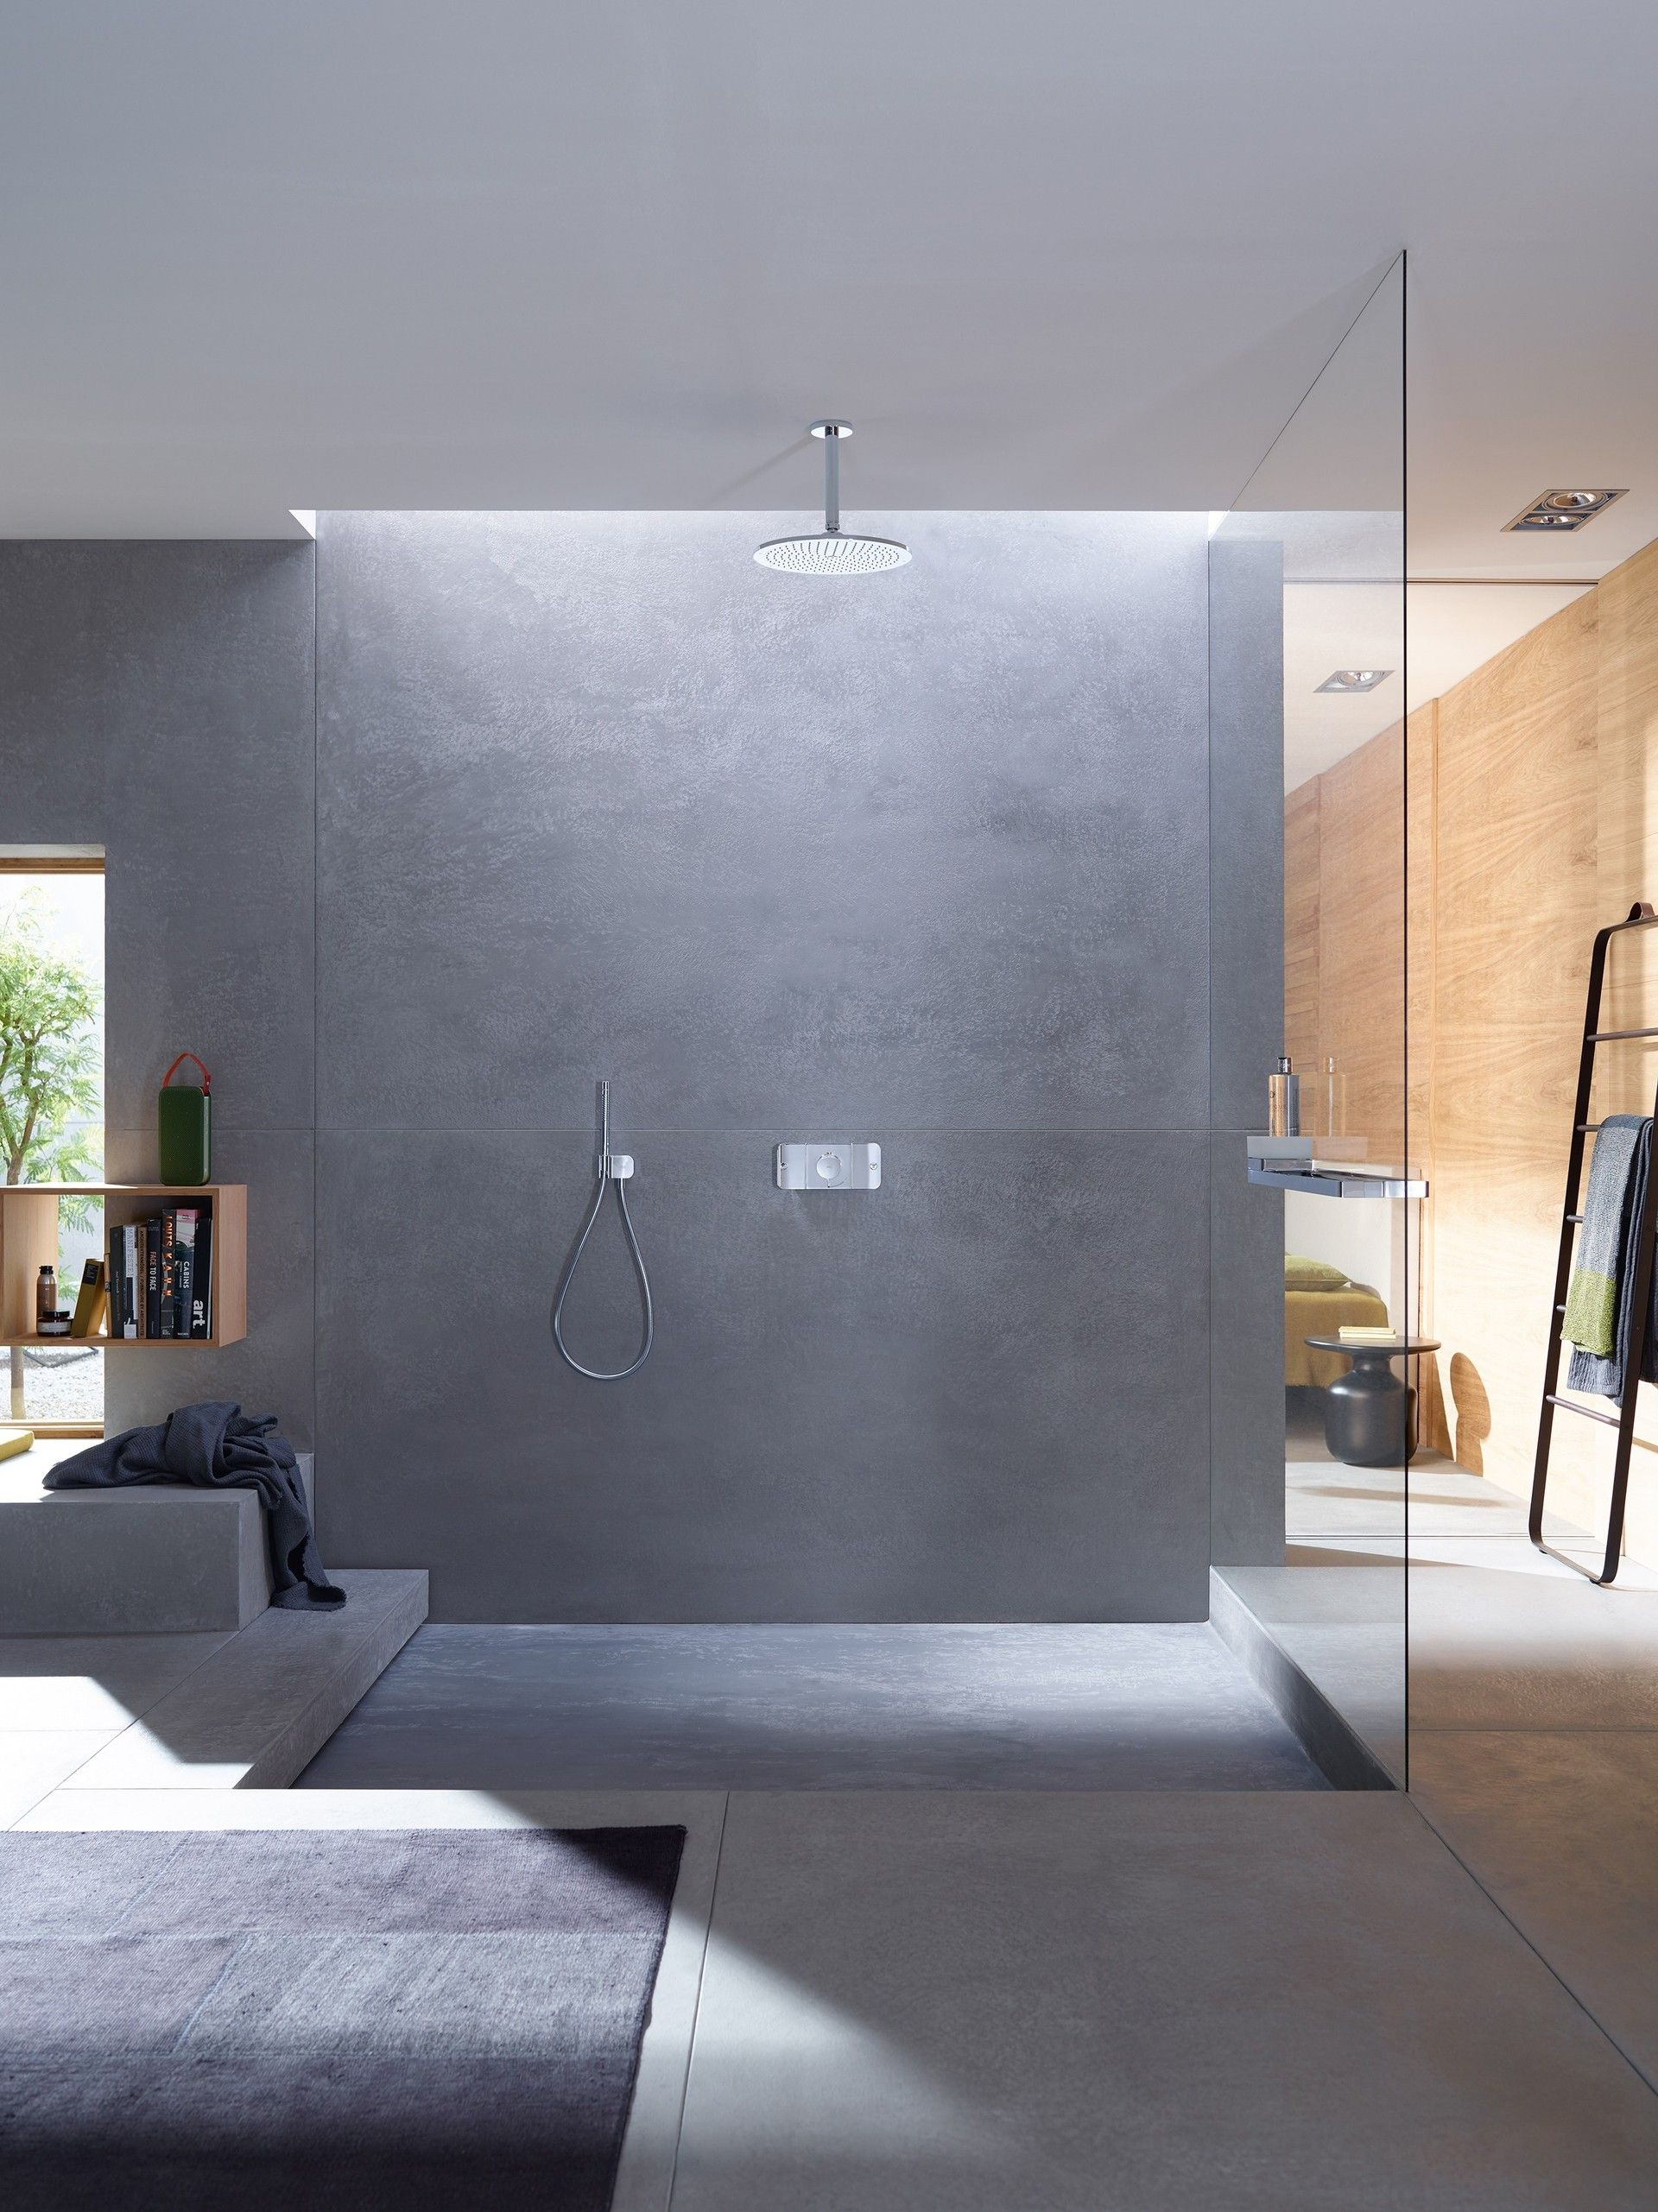 axor one designed by barber osgerby by hansgrohe se - Hansgrohe Wasserfall Dusche